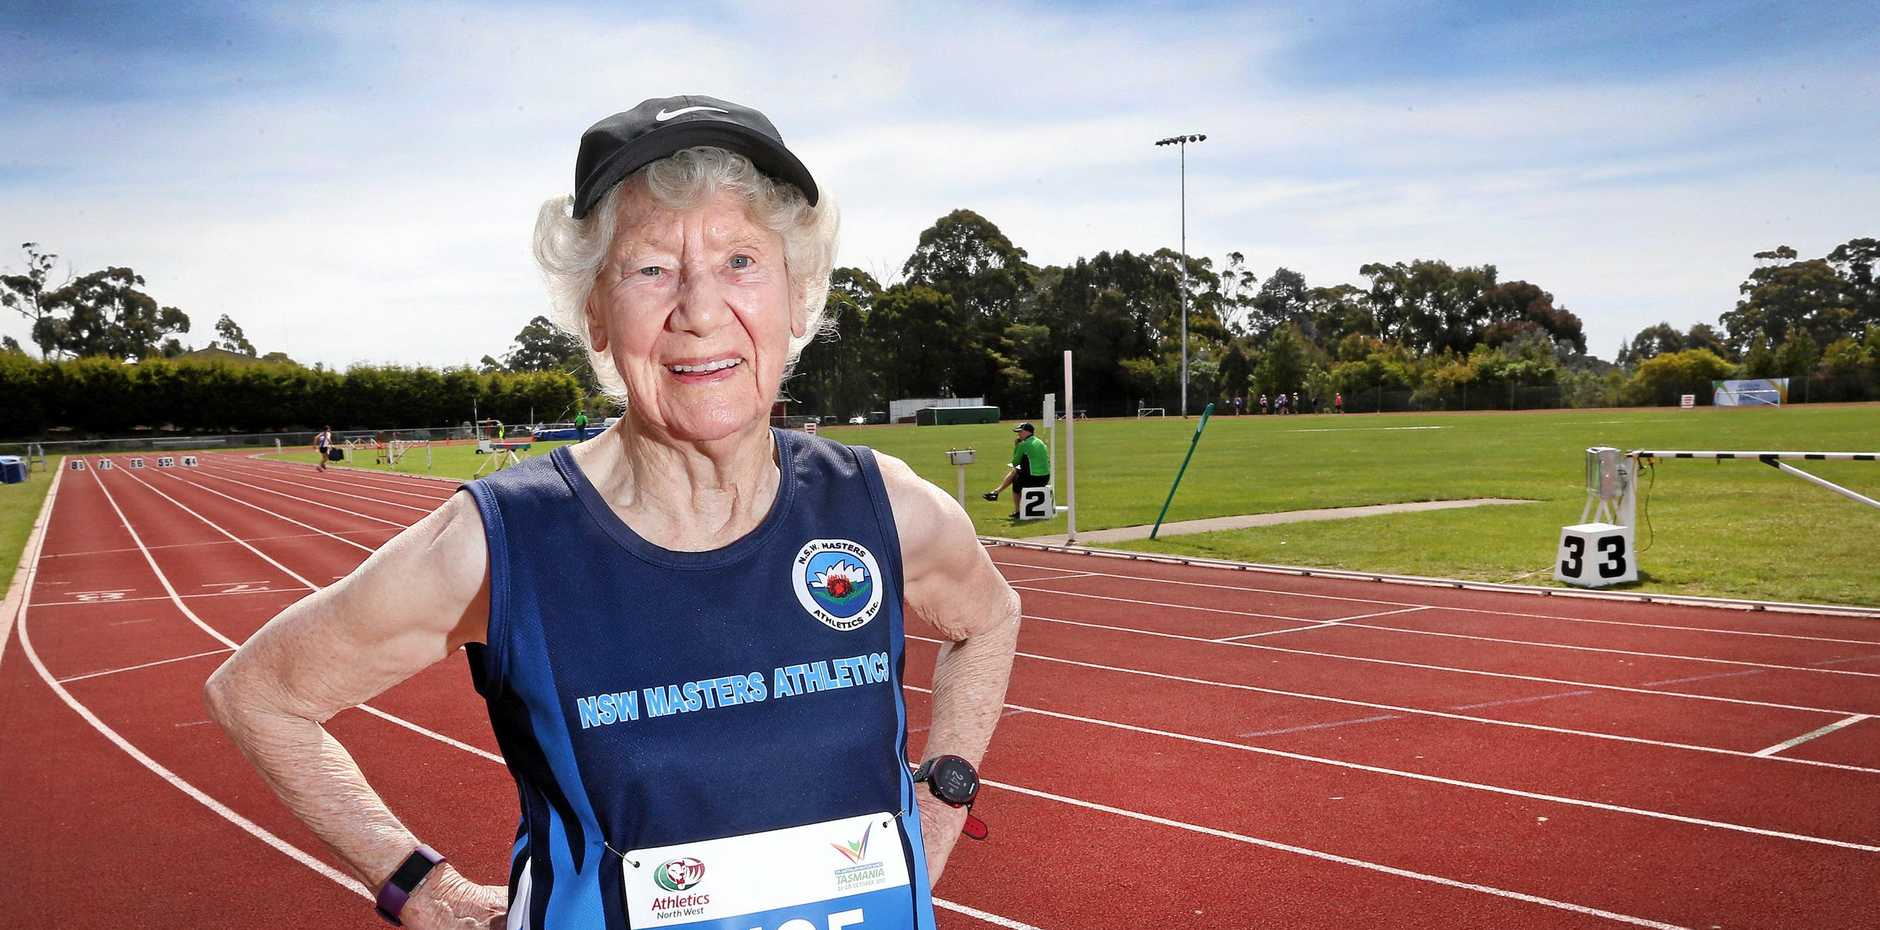 Heather Lee, 91 of NSW, after setting a world record in the 3000m during the Australian Masters Games 2017. PICTURE CHRIS KIDD